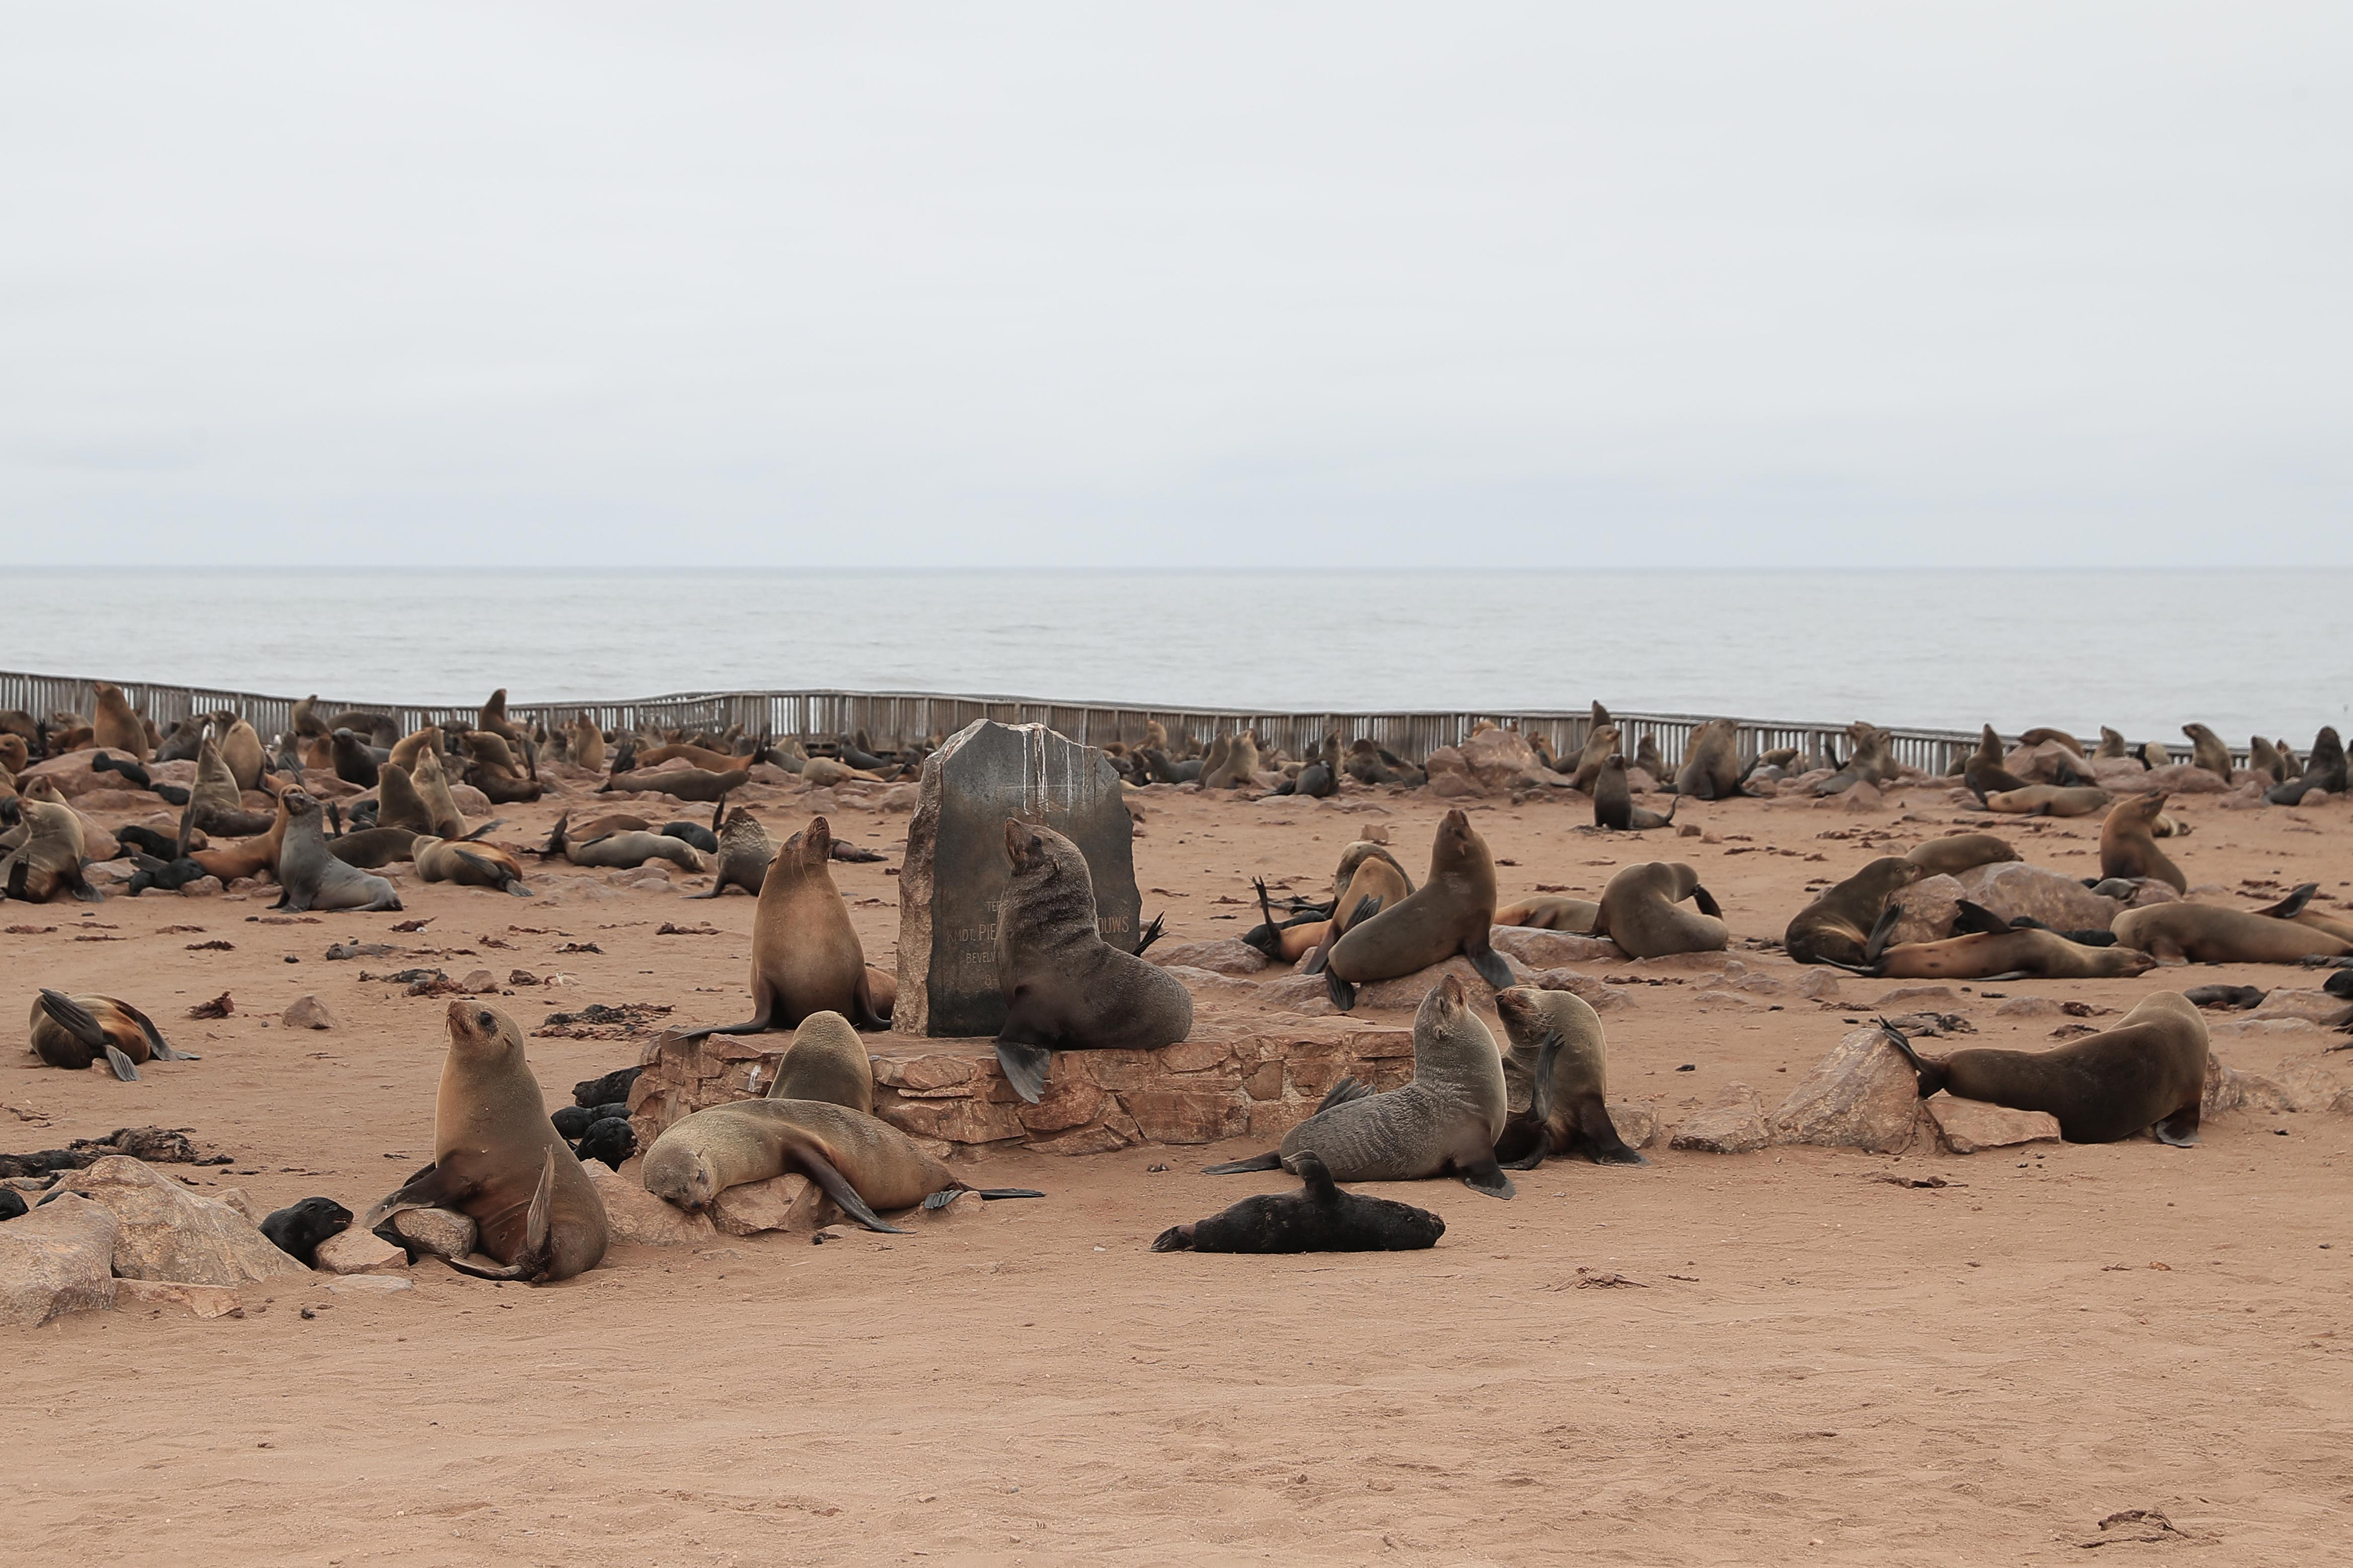 <p>Cape fur seals gather at a marker at Cape Cross Seal Reserve, as the remains of dead seals fill the beach. (Photo: Gordon Donovan/Yahoo News) </p>